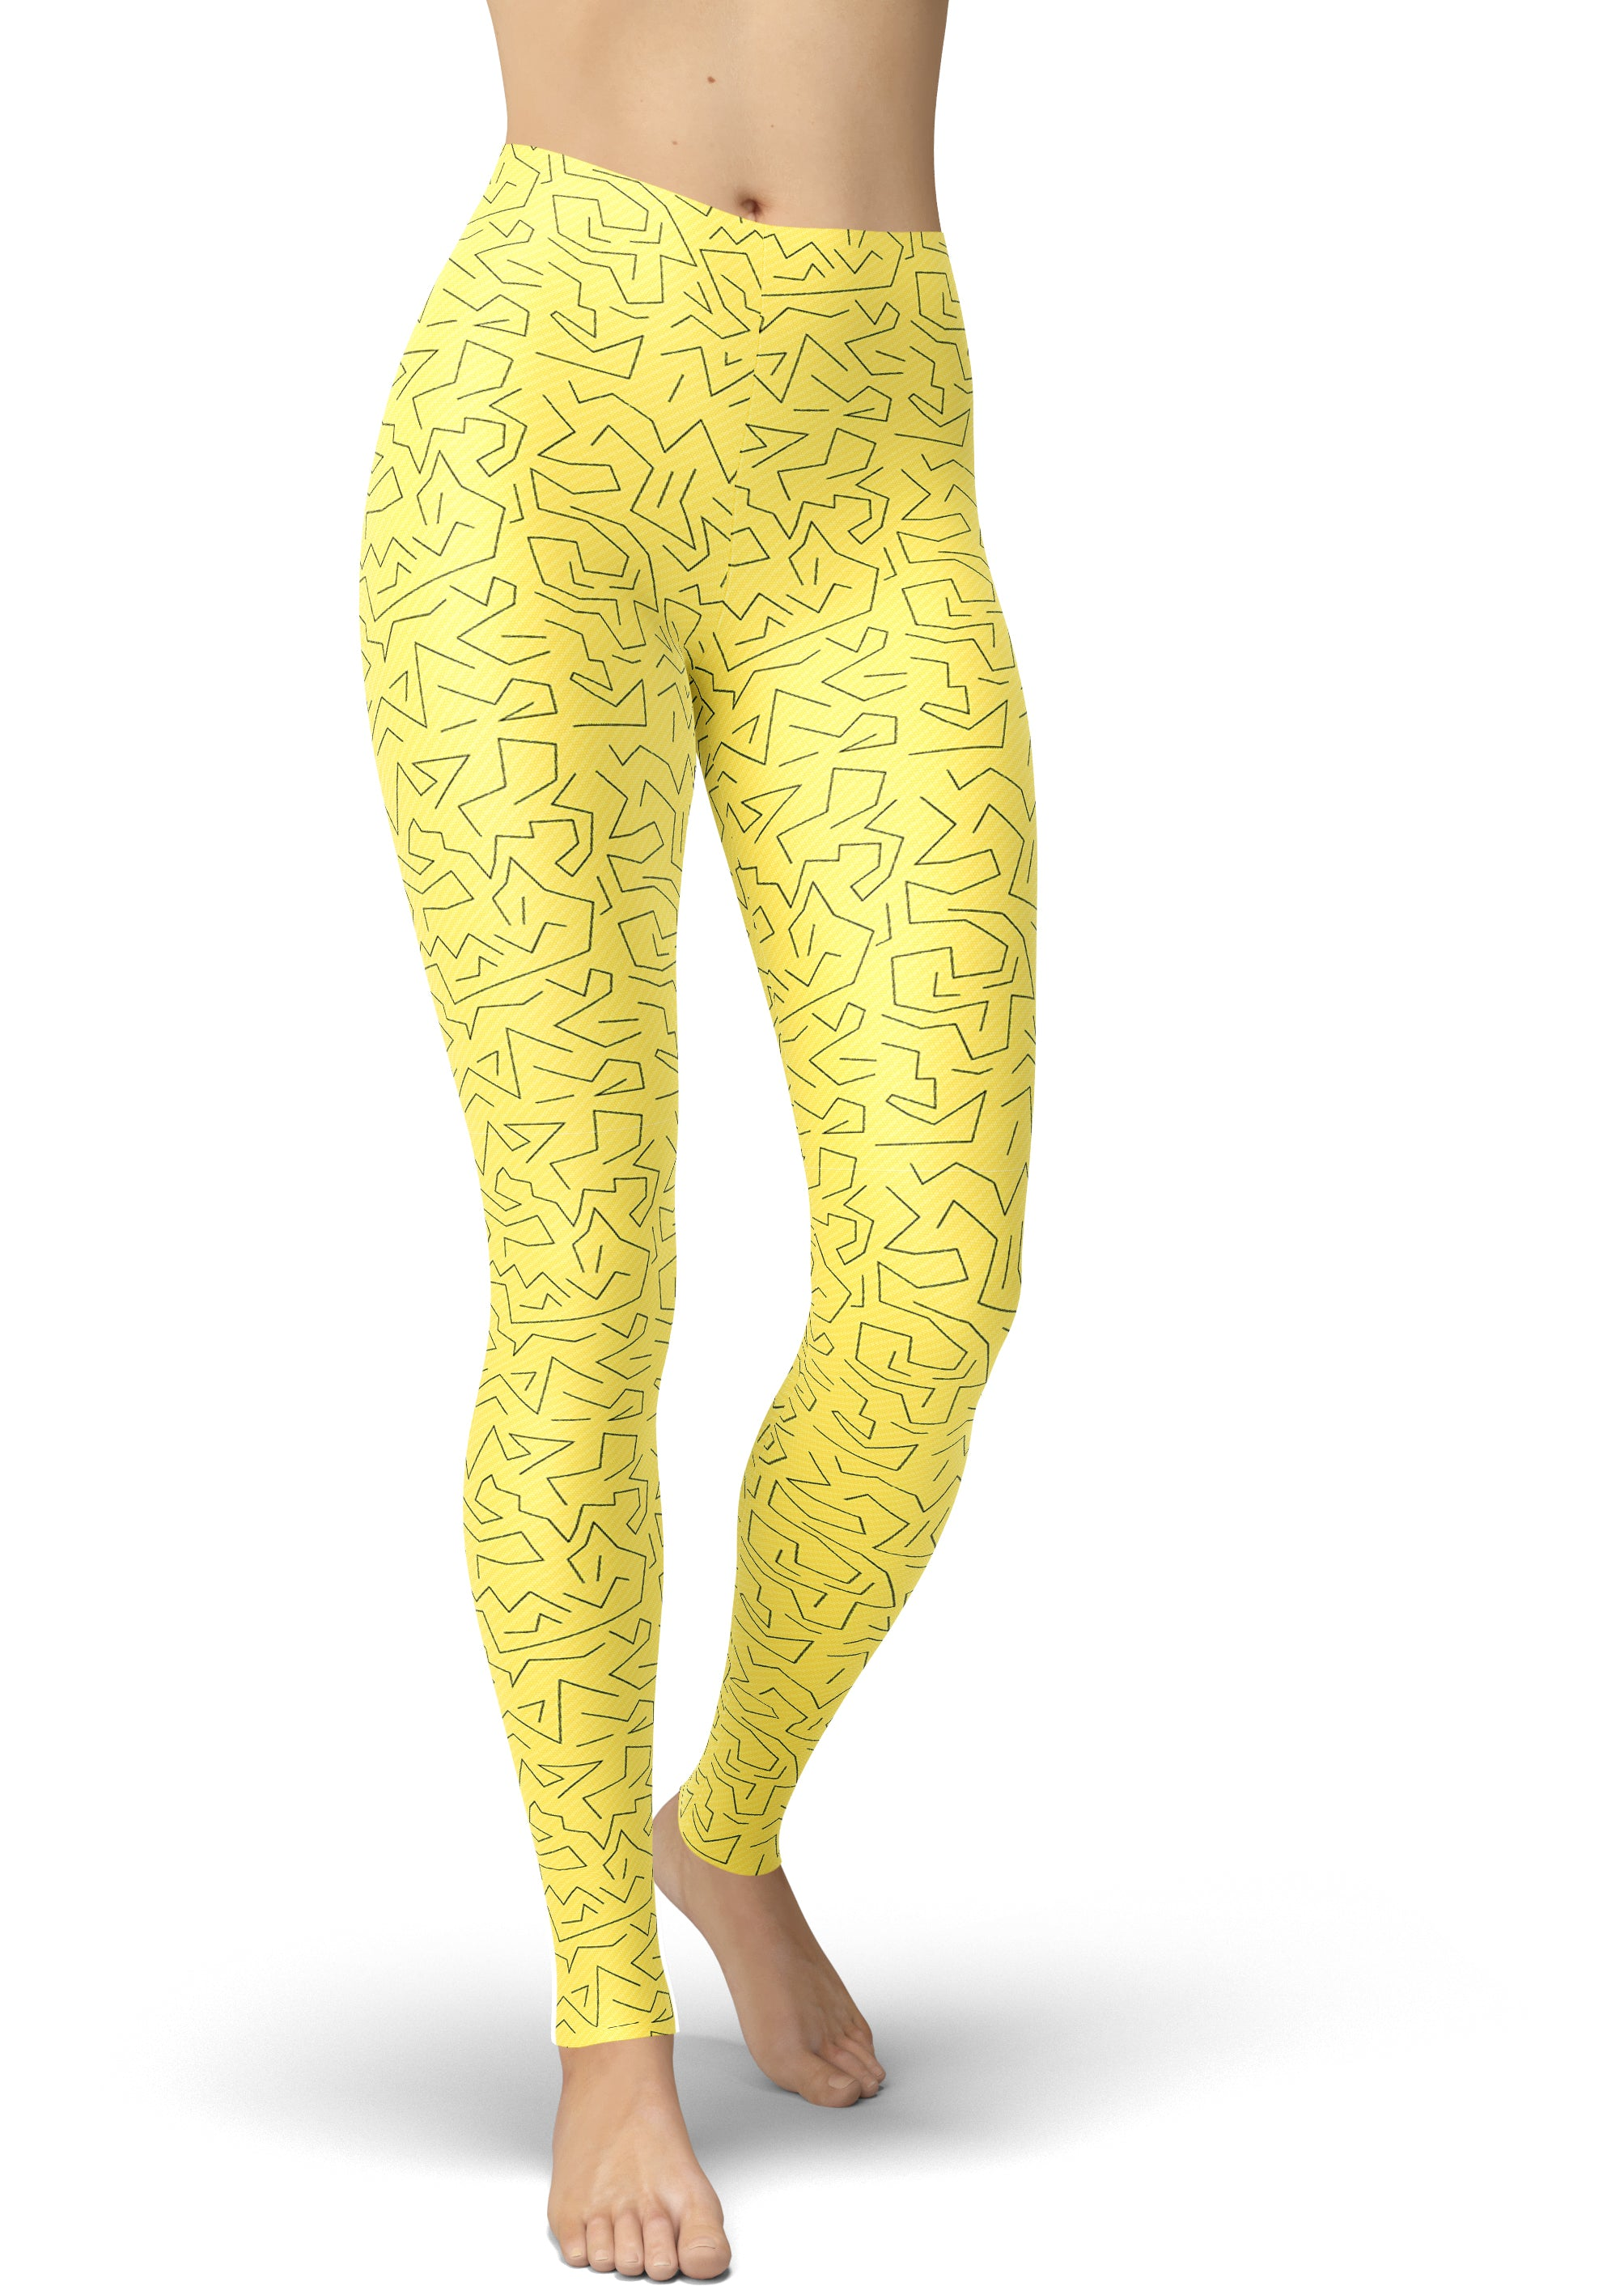 Yello Retro Leggings